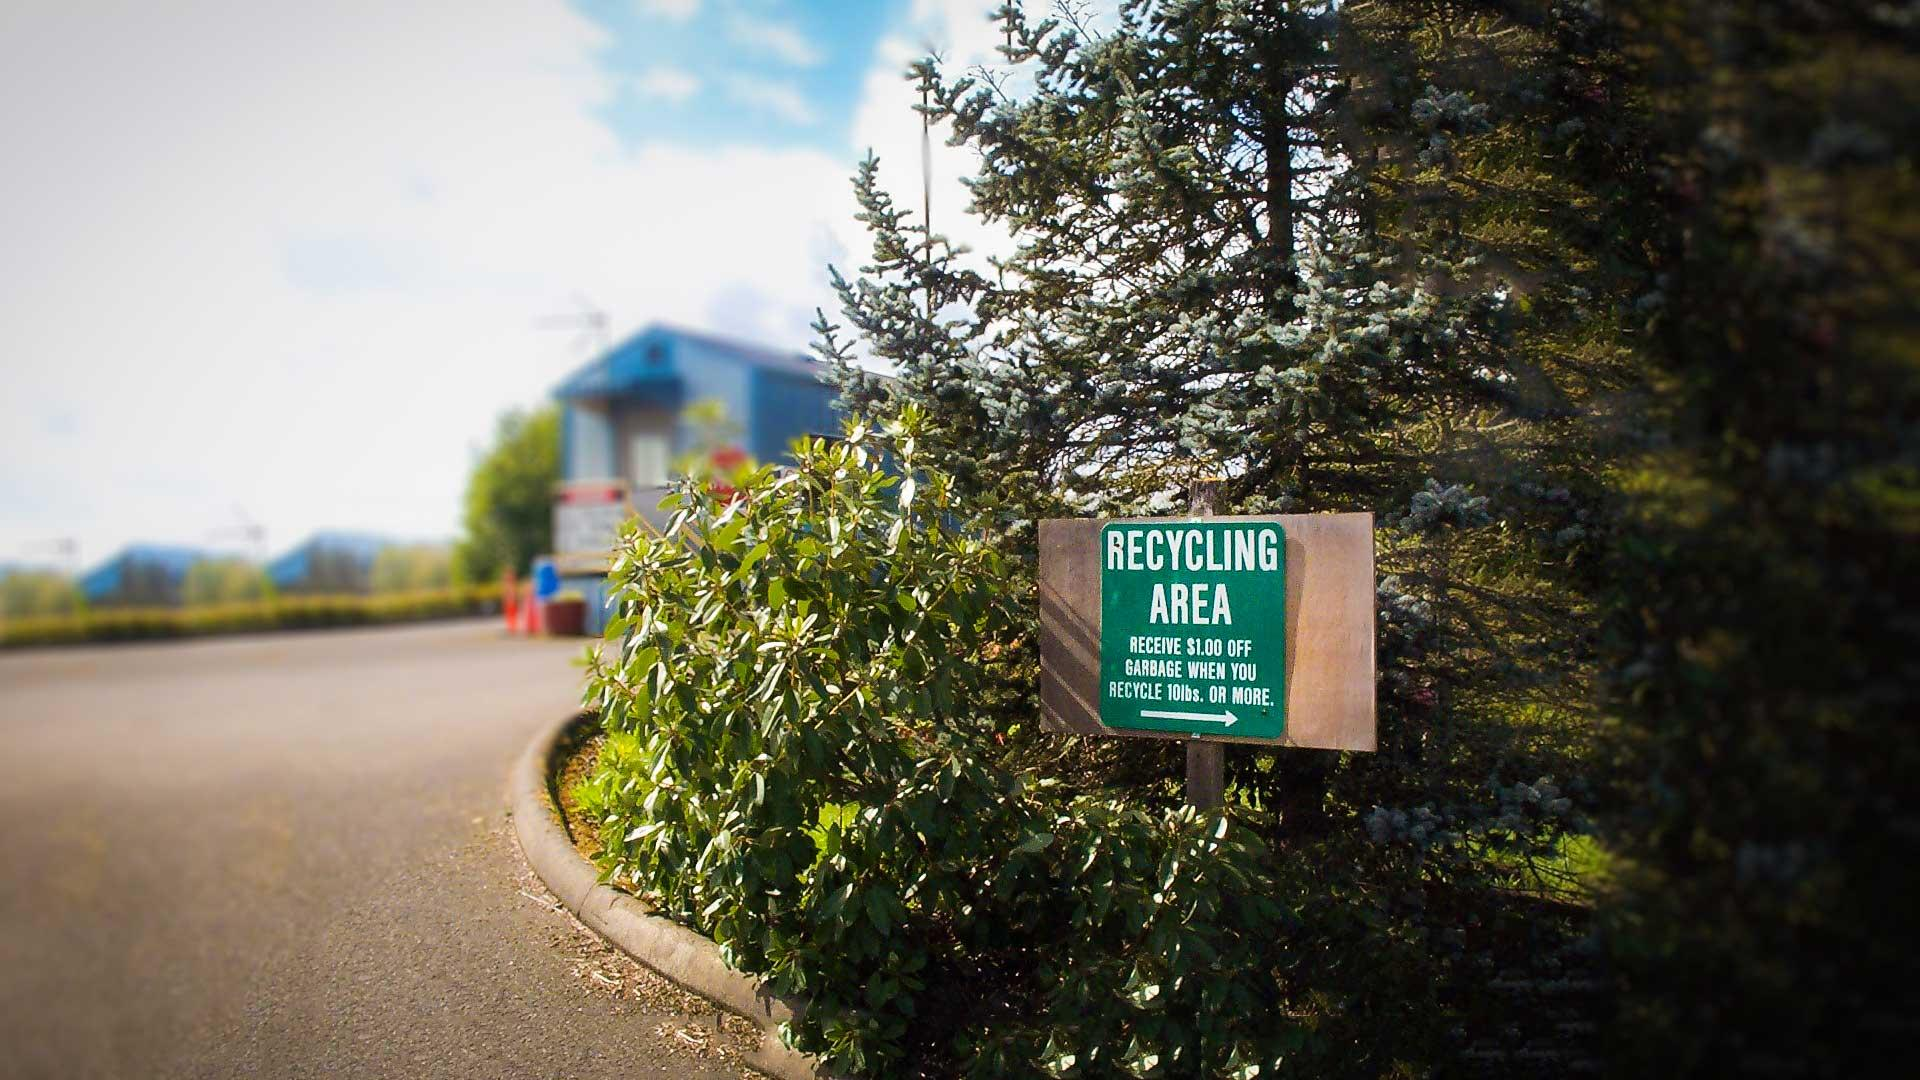 Recycling sign in front of a recycling center